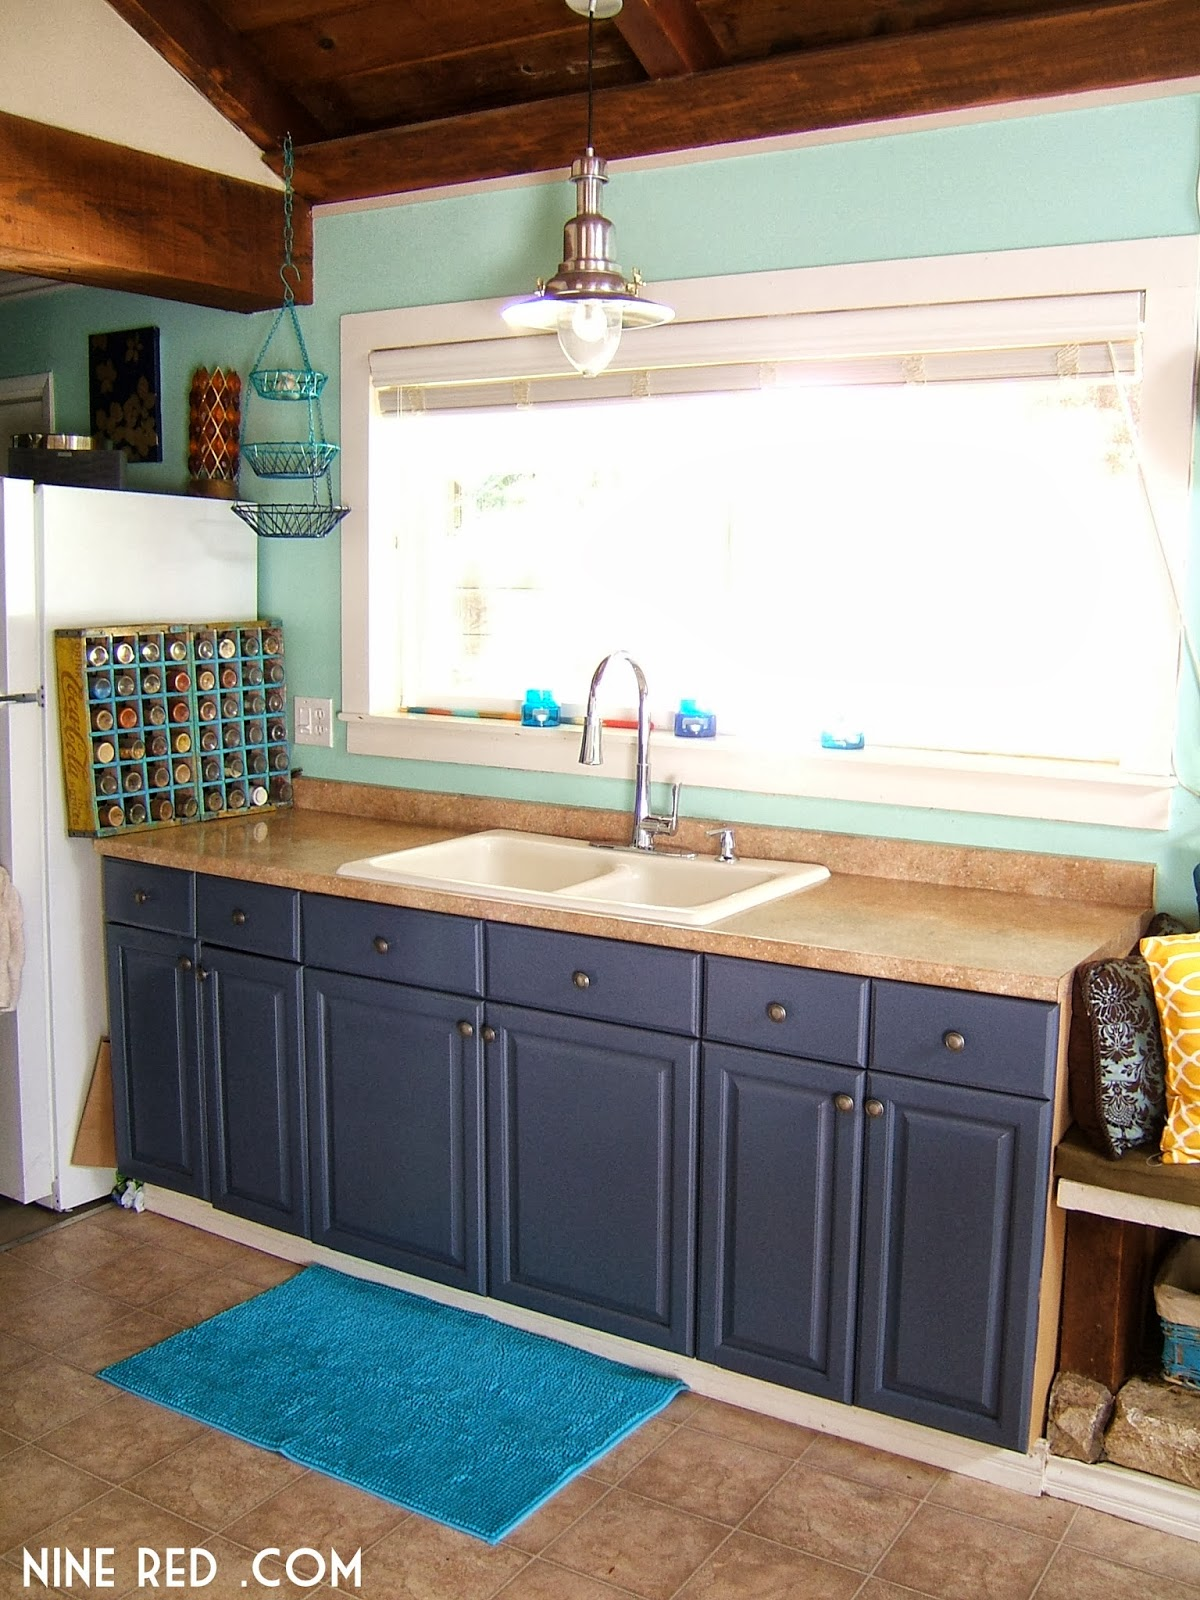 Painting The Kitchen Cabinets Part 2